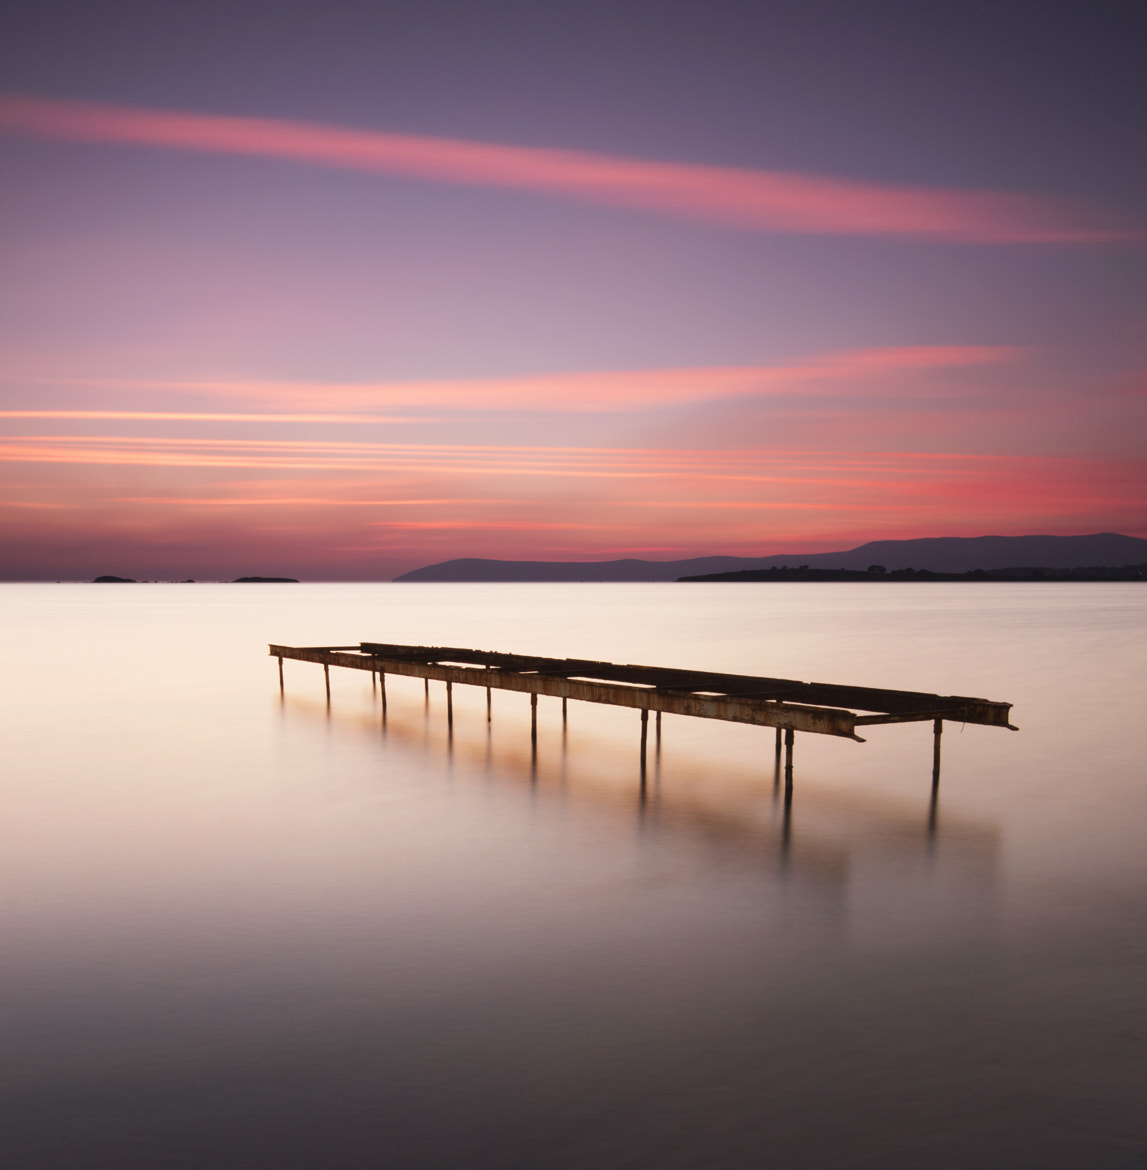 Photograph *** silence *** by Ömür Kahveci on 500px